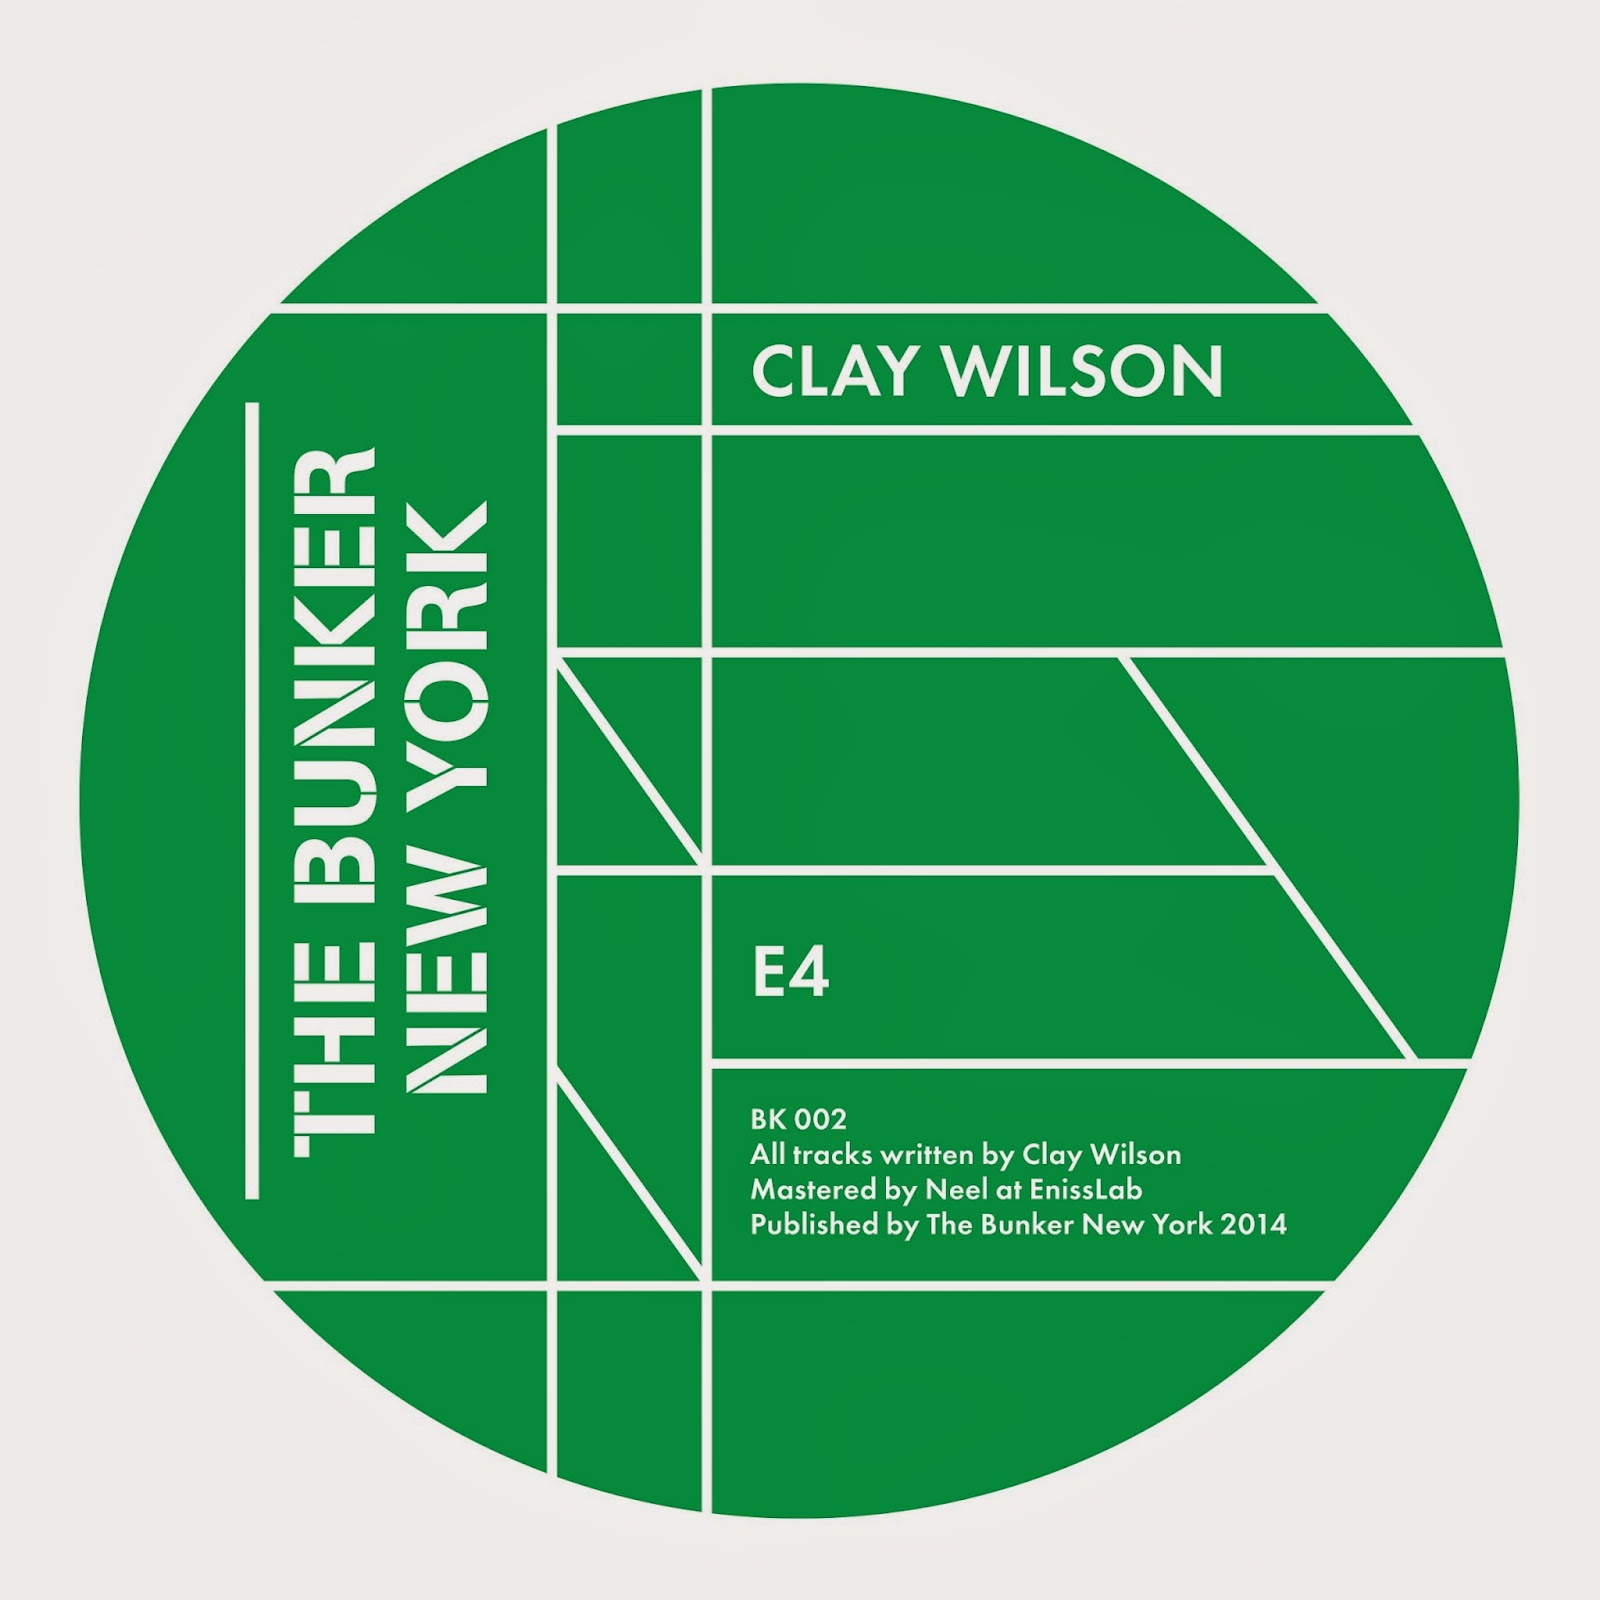 discosafari - CLAY WILSON - The Bunker New York 002 - The Bunker New York